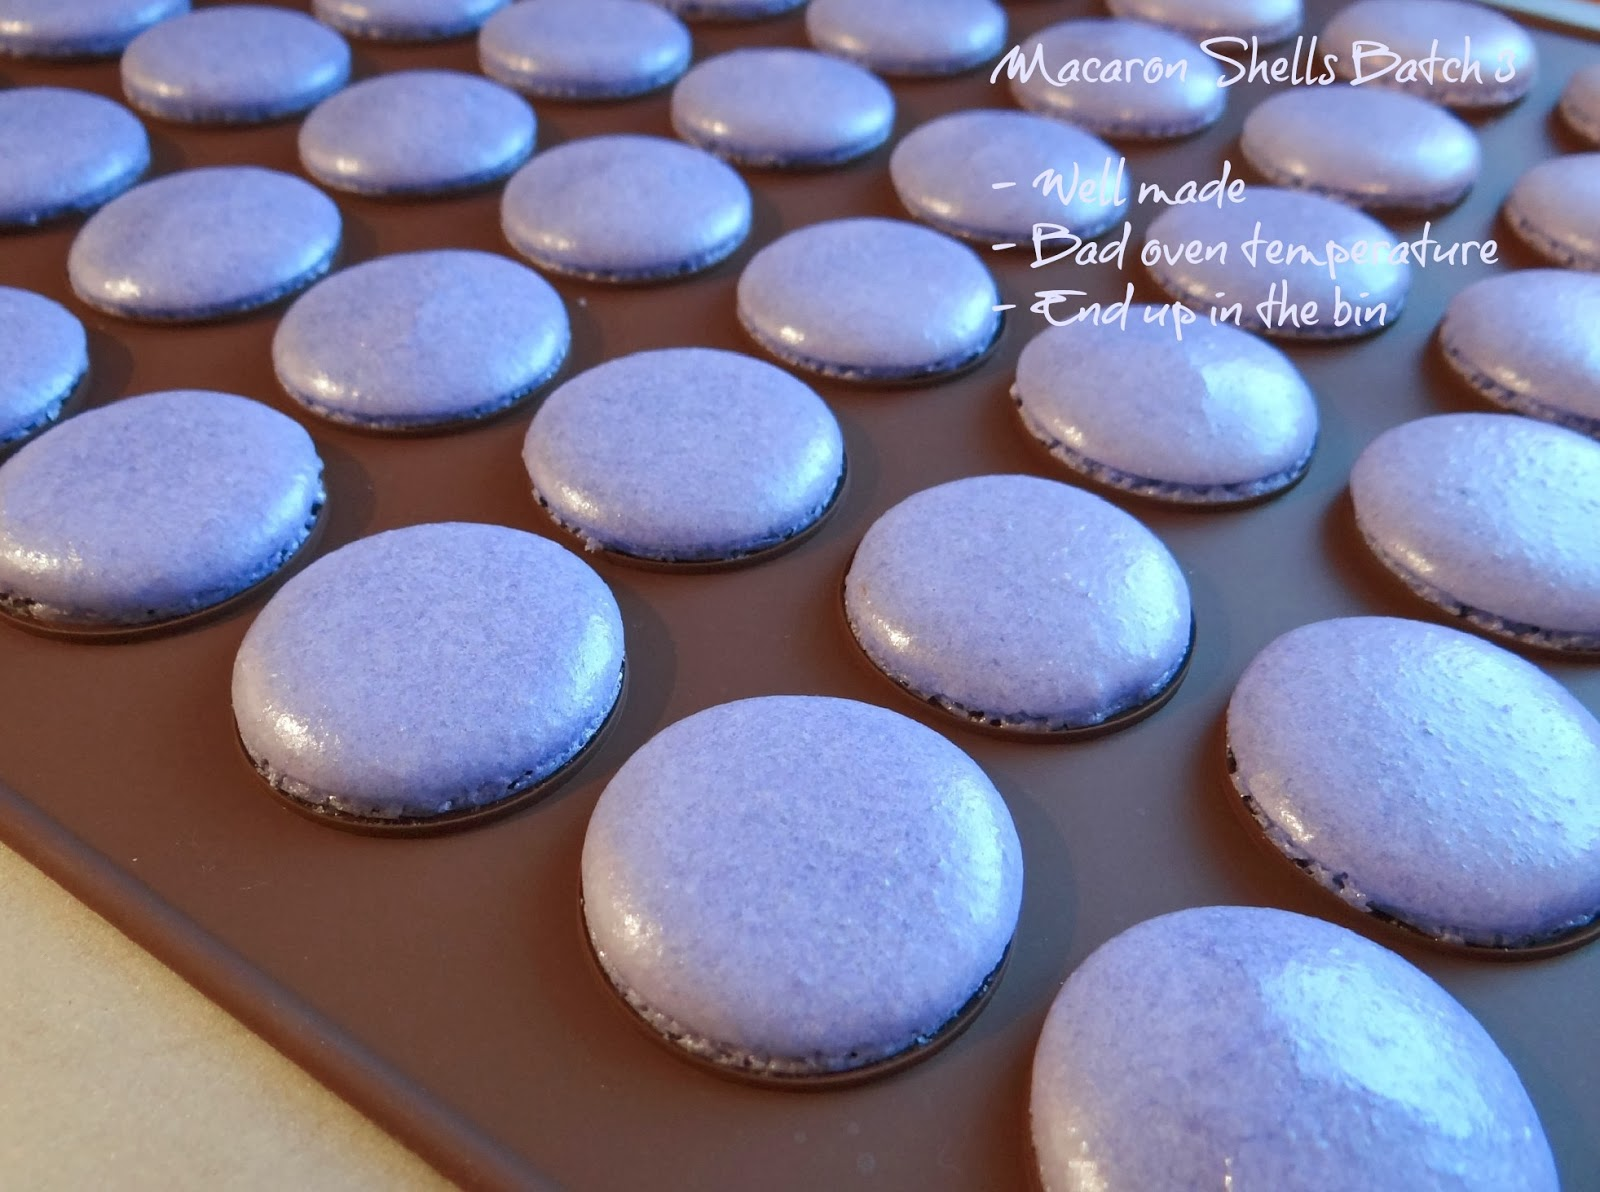 French Macarons, How to make Macarons, Macaroons